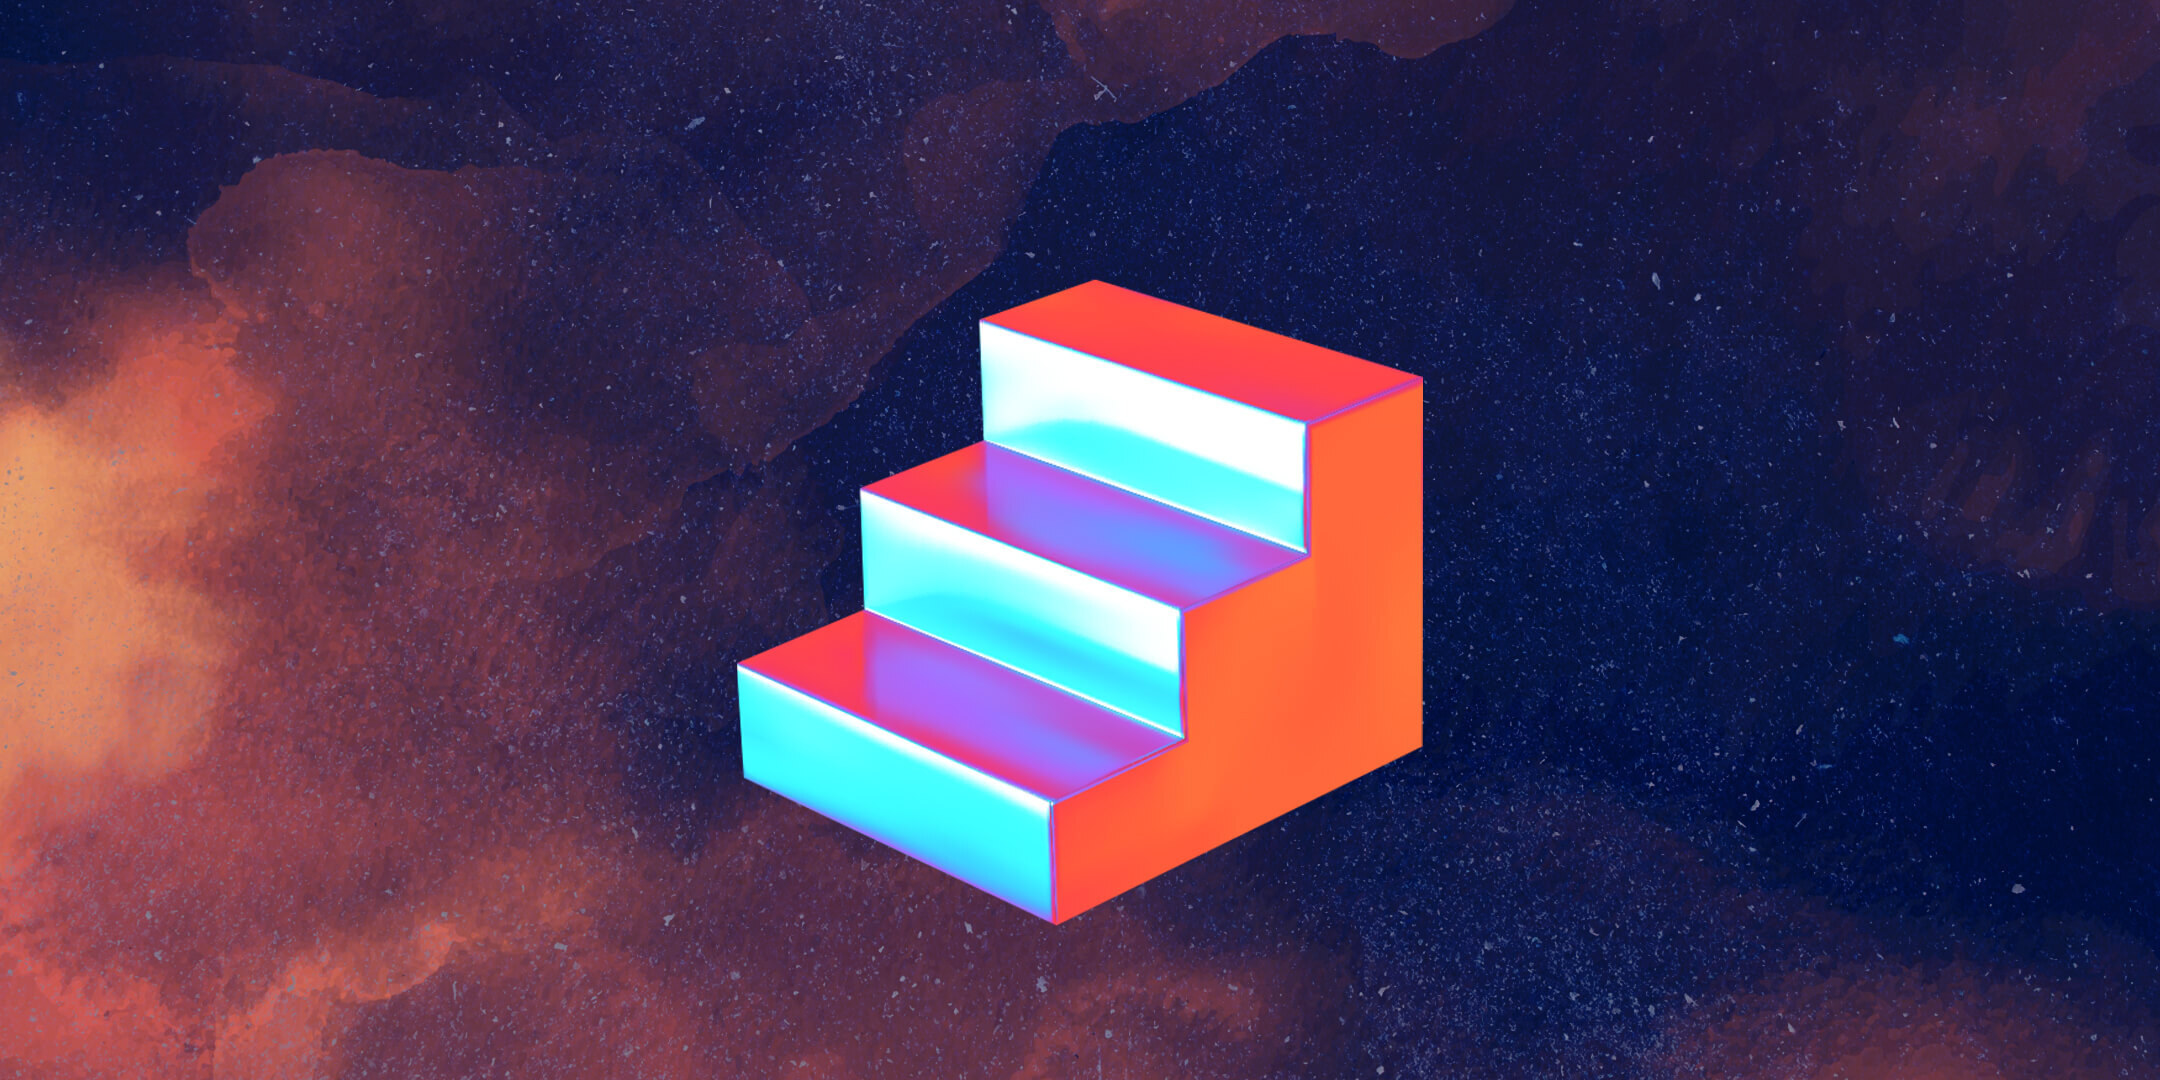 Abstract image of 3 stairs in space